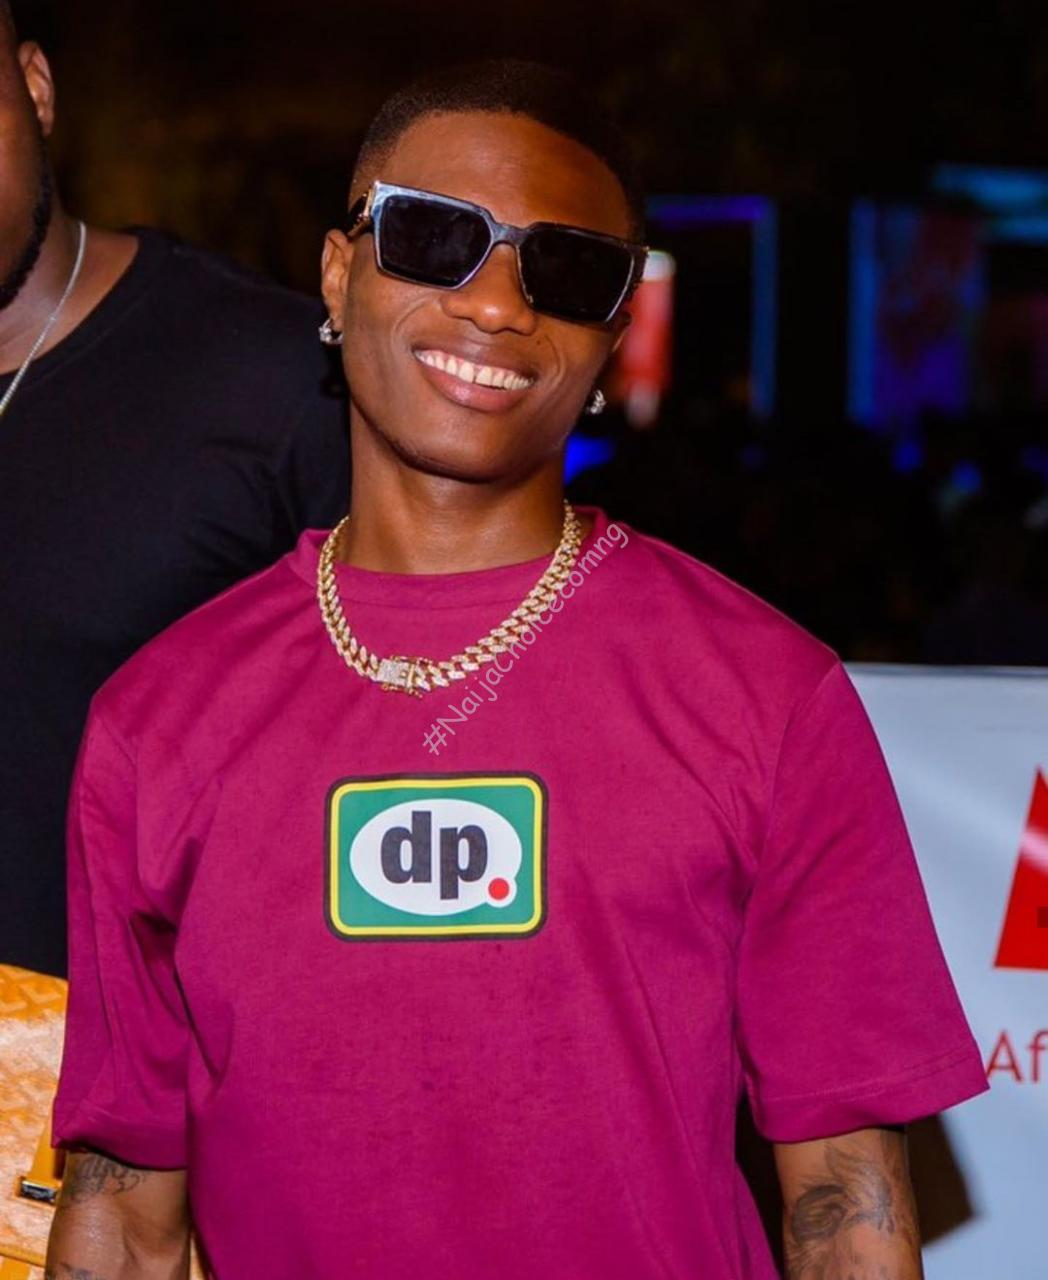 'Last Night! My Baby Sounded Amazing Live' - Wizkid Showers Praises On Teni